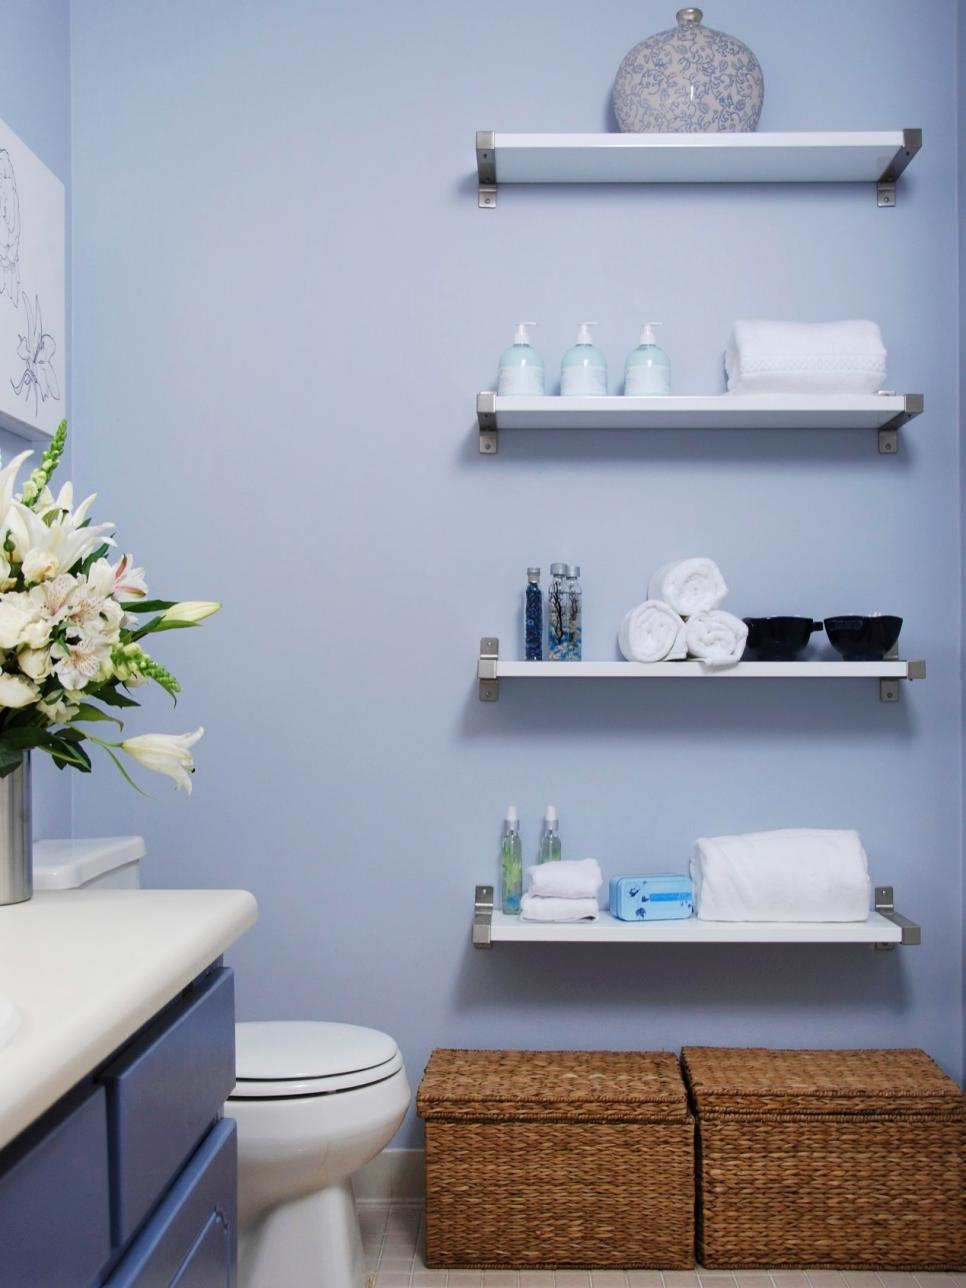 Decorating With Floating Shelves Hgtv Pertaining To Free Floating Glass Shelves (View 12 of 15)